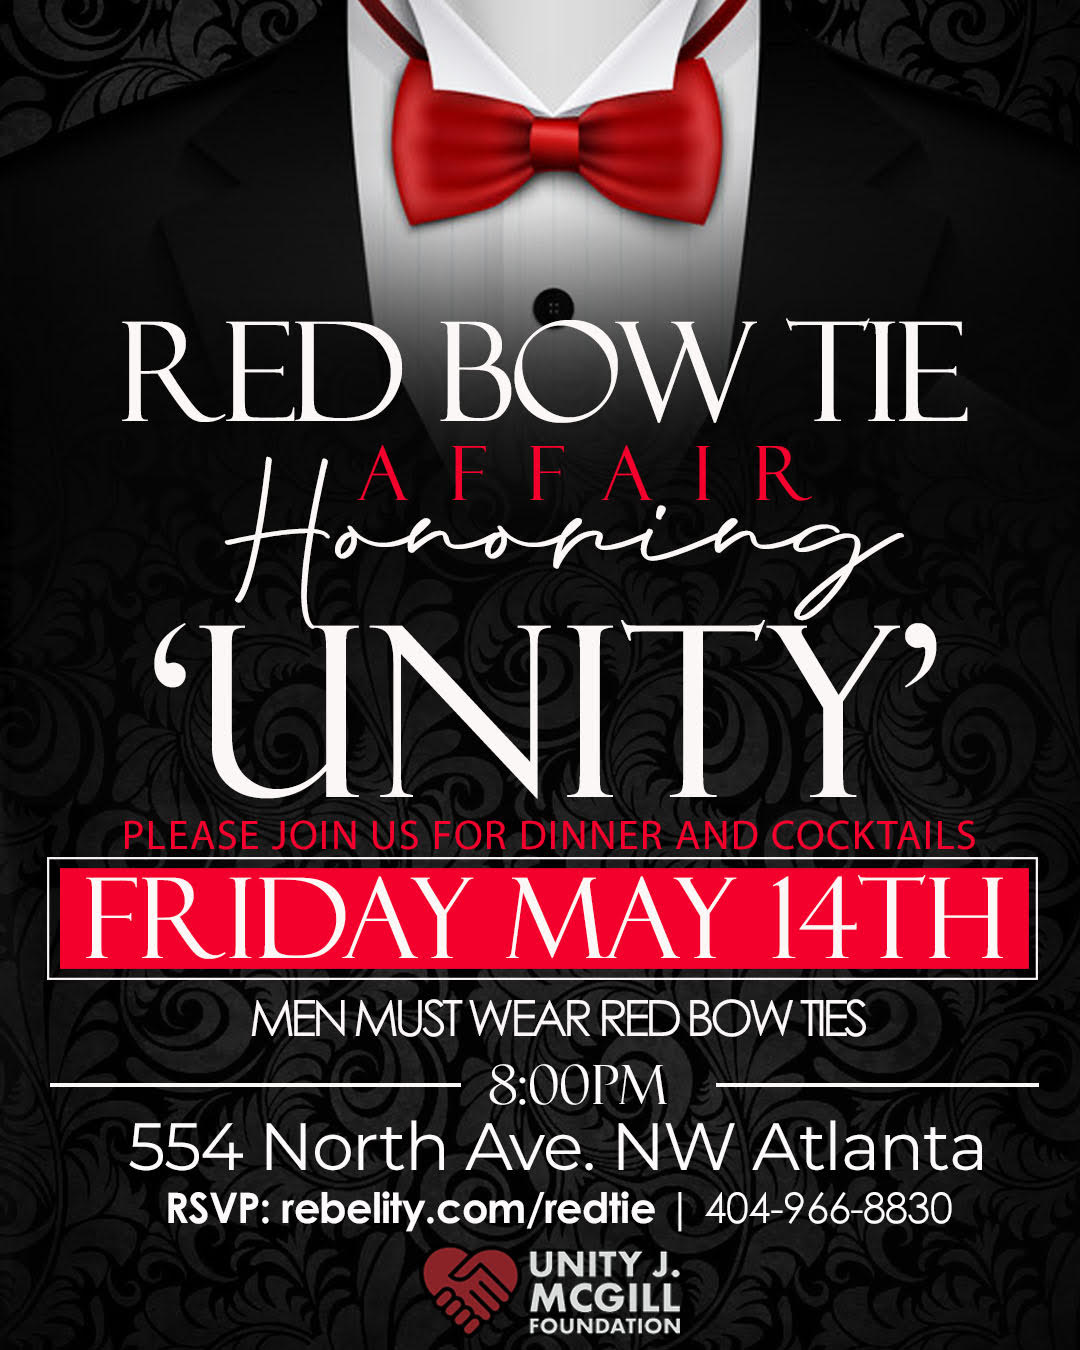 RED BOW TIE AFFAIR